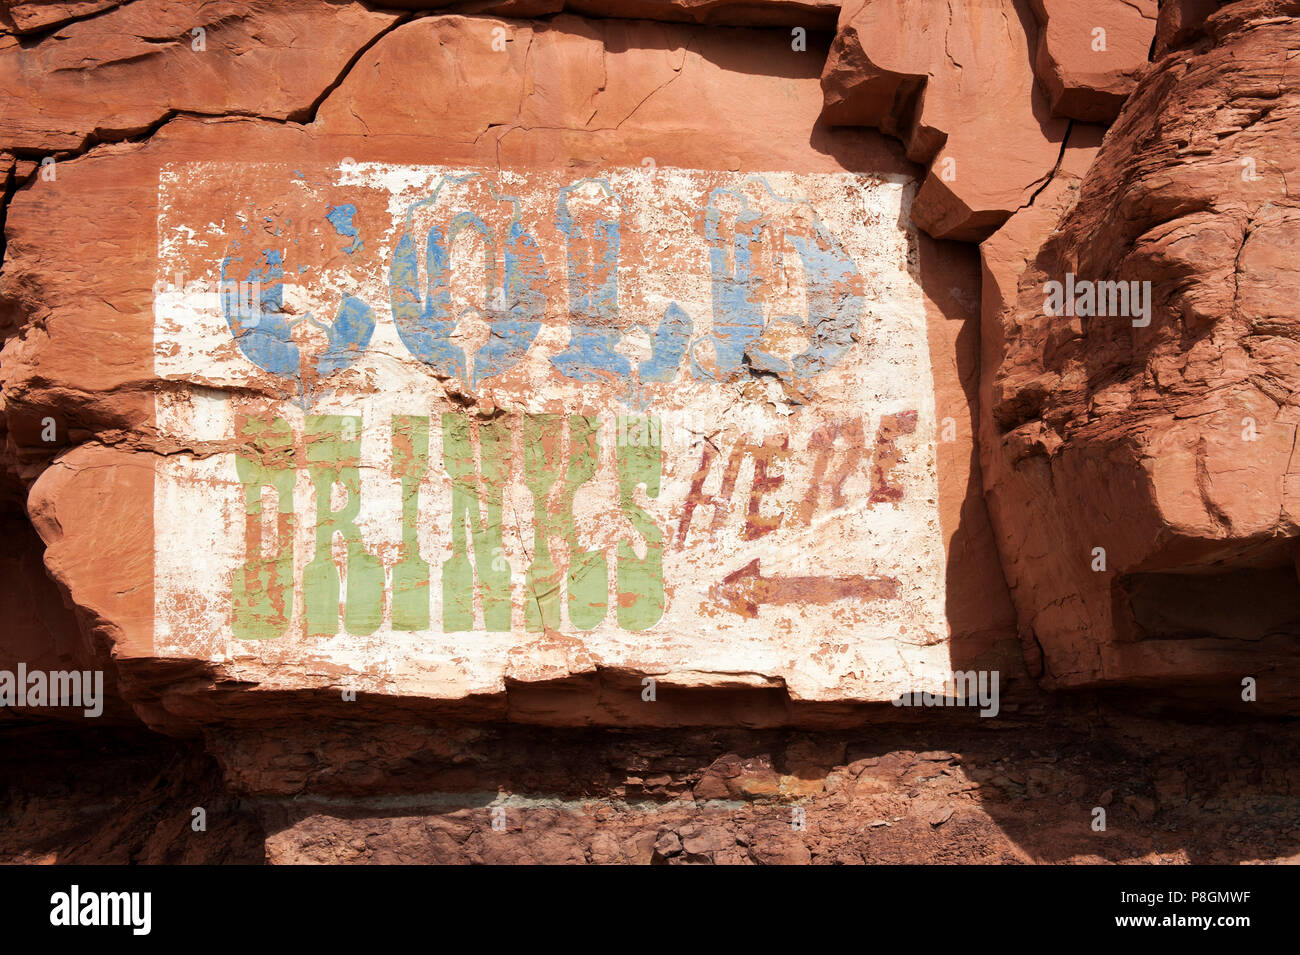 Fading 'Cold Drinks Here' ad painted on a red rock cliff near Mexican Hat, Utah, USA. - Stock Image